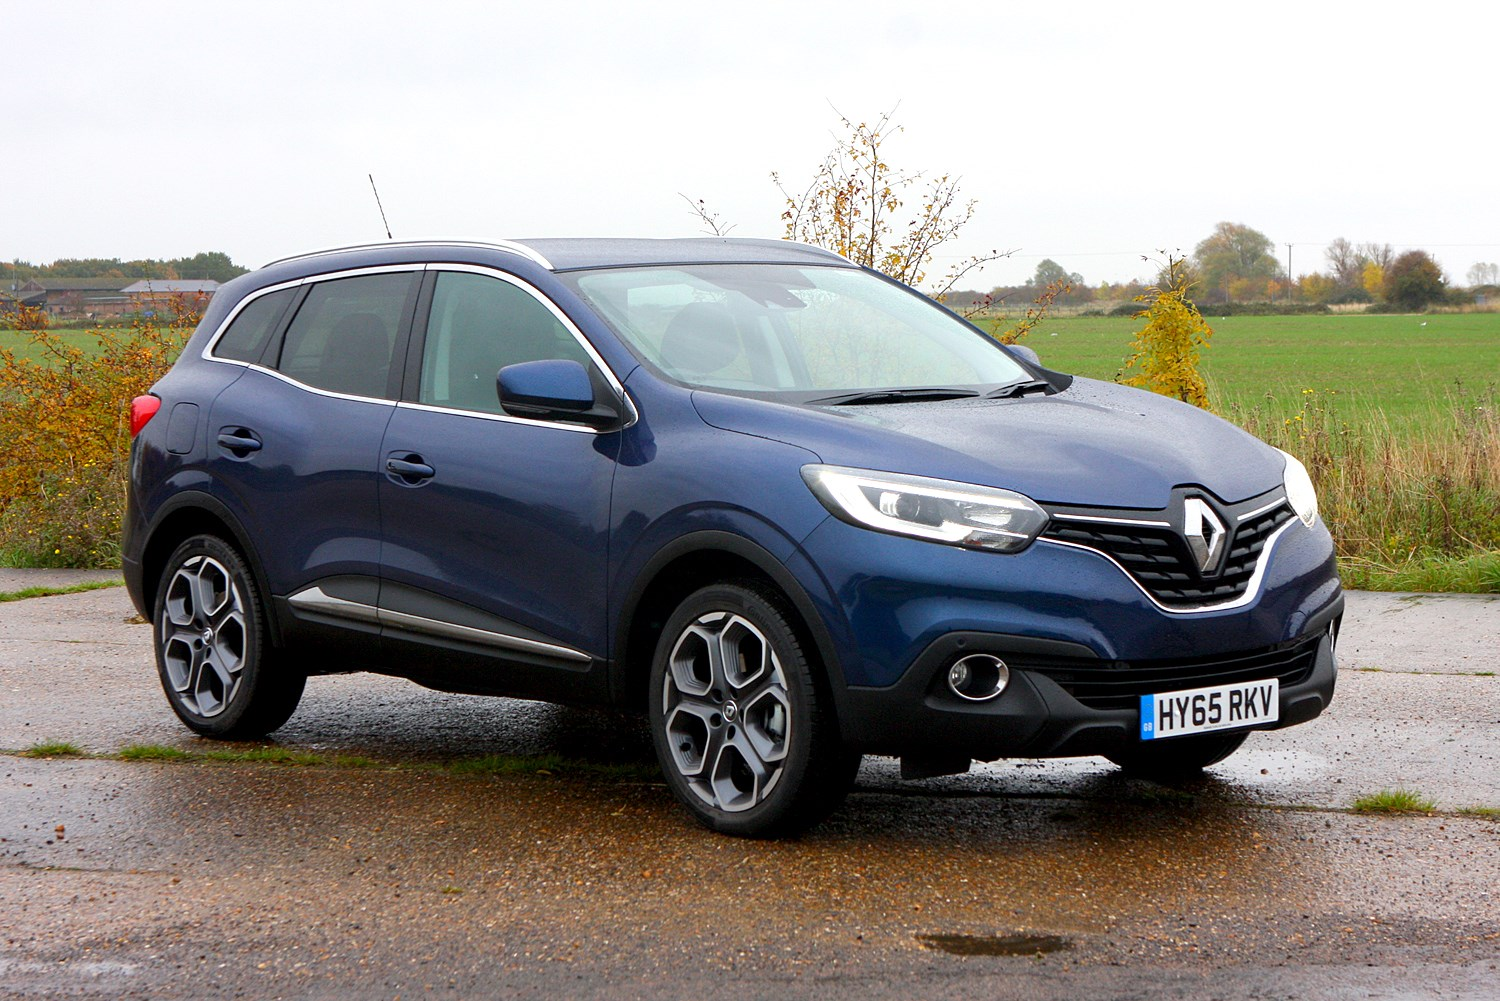 renault kadjar 4x4 review 2015 parkers. Black Bedroom Furniture Sets. Home Design Ideas